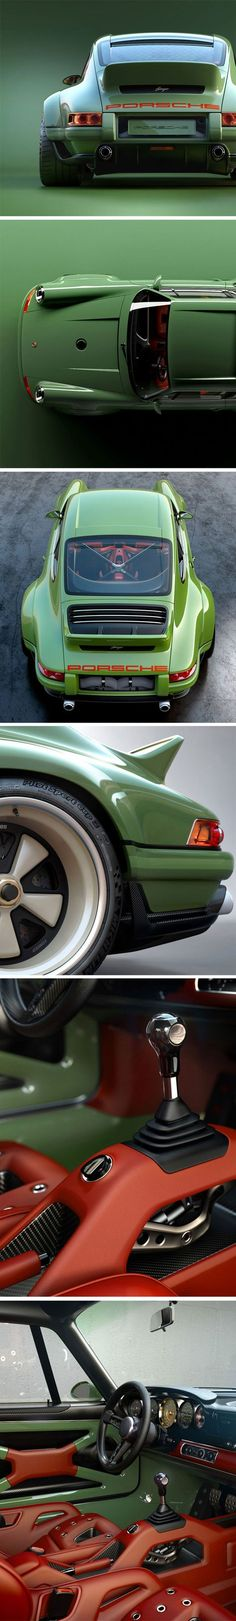 A Custom 1990 Porsche 964, The First In A Limited Edition Series - singer Porsches are so beautiful.